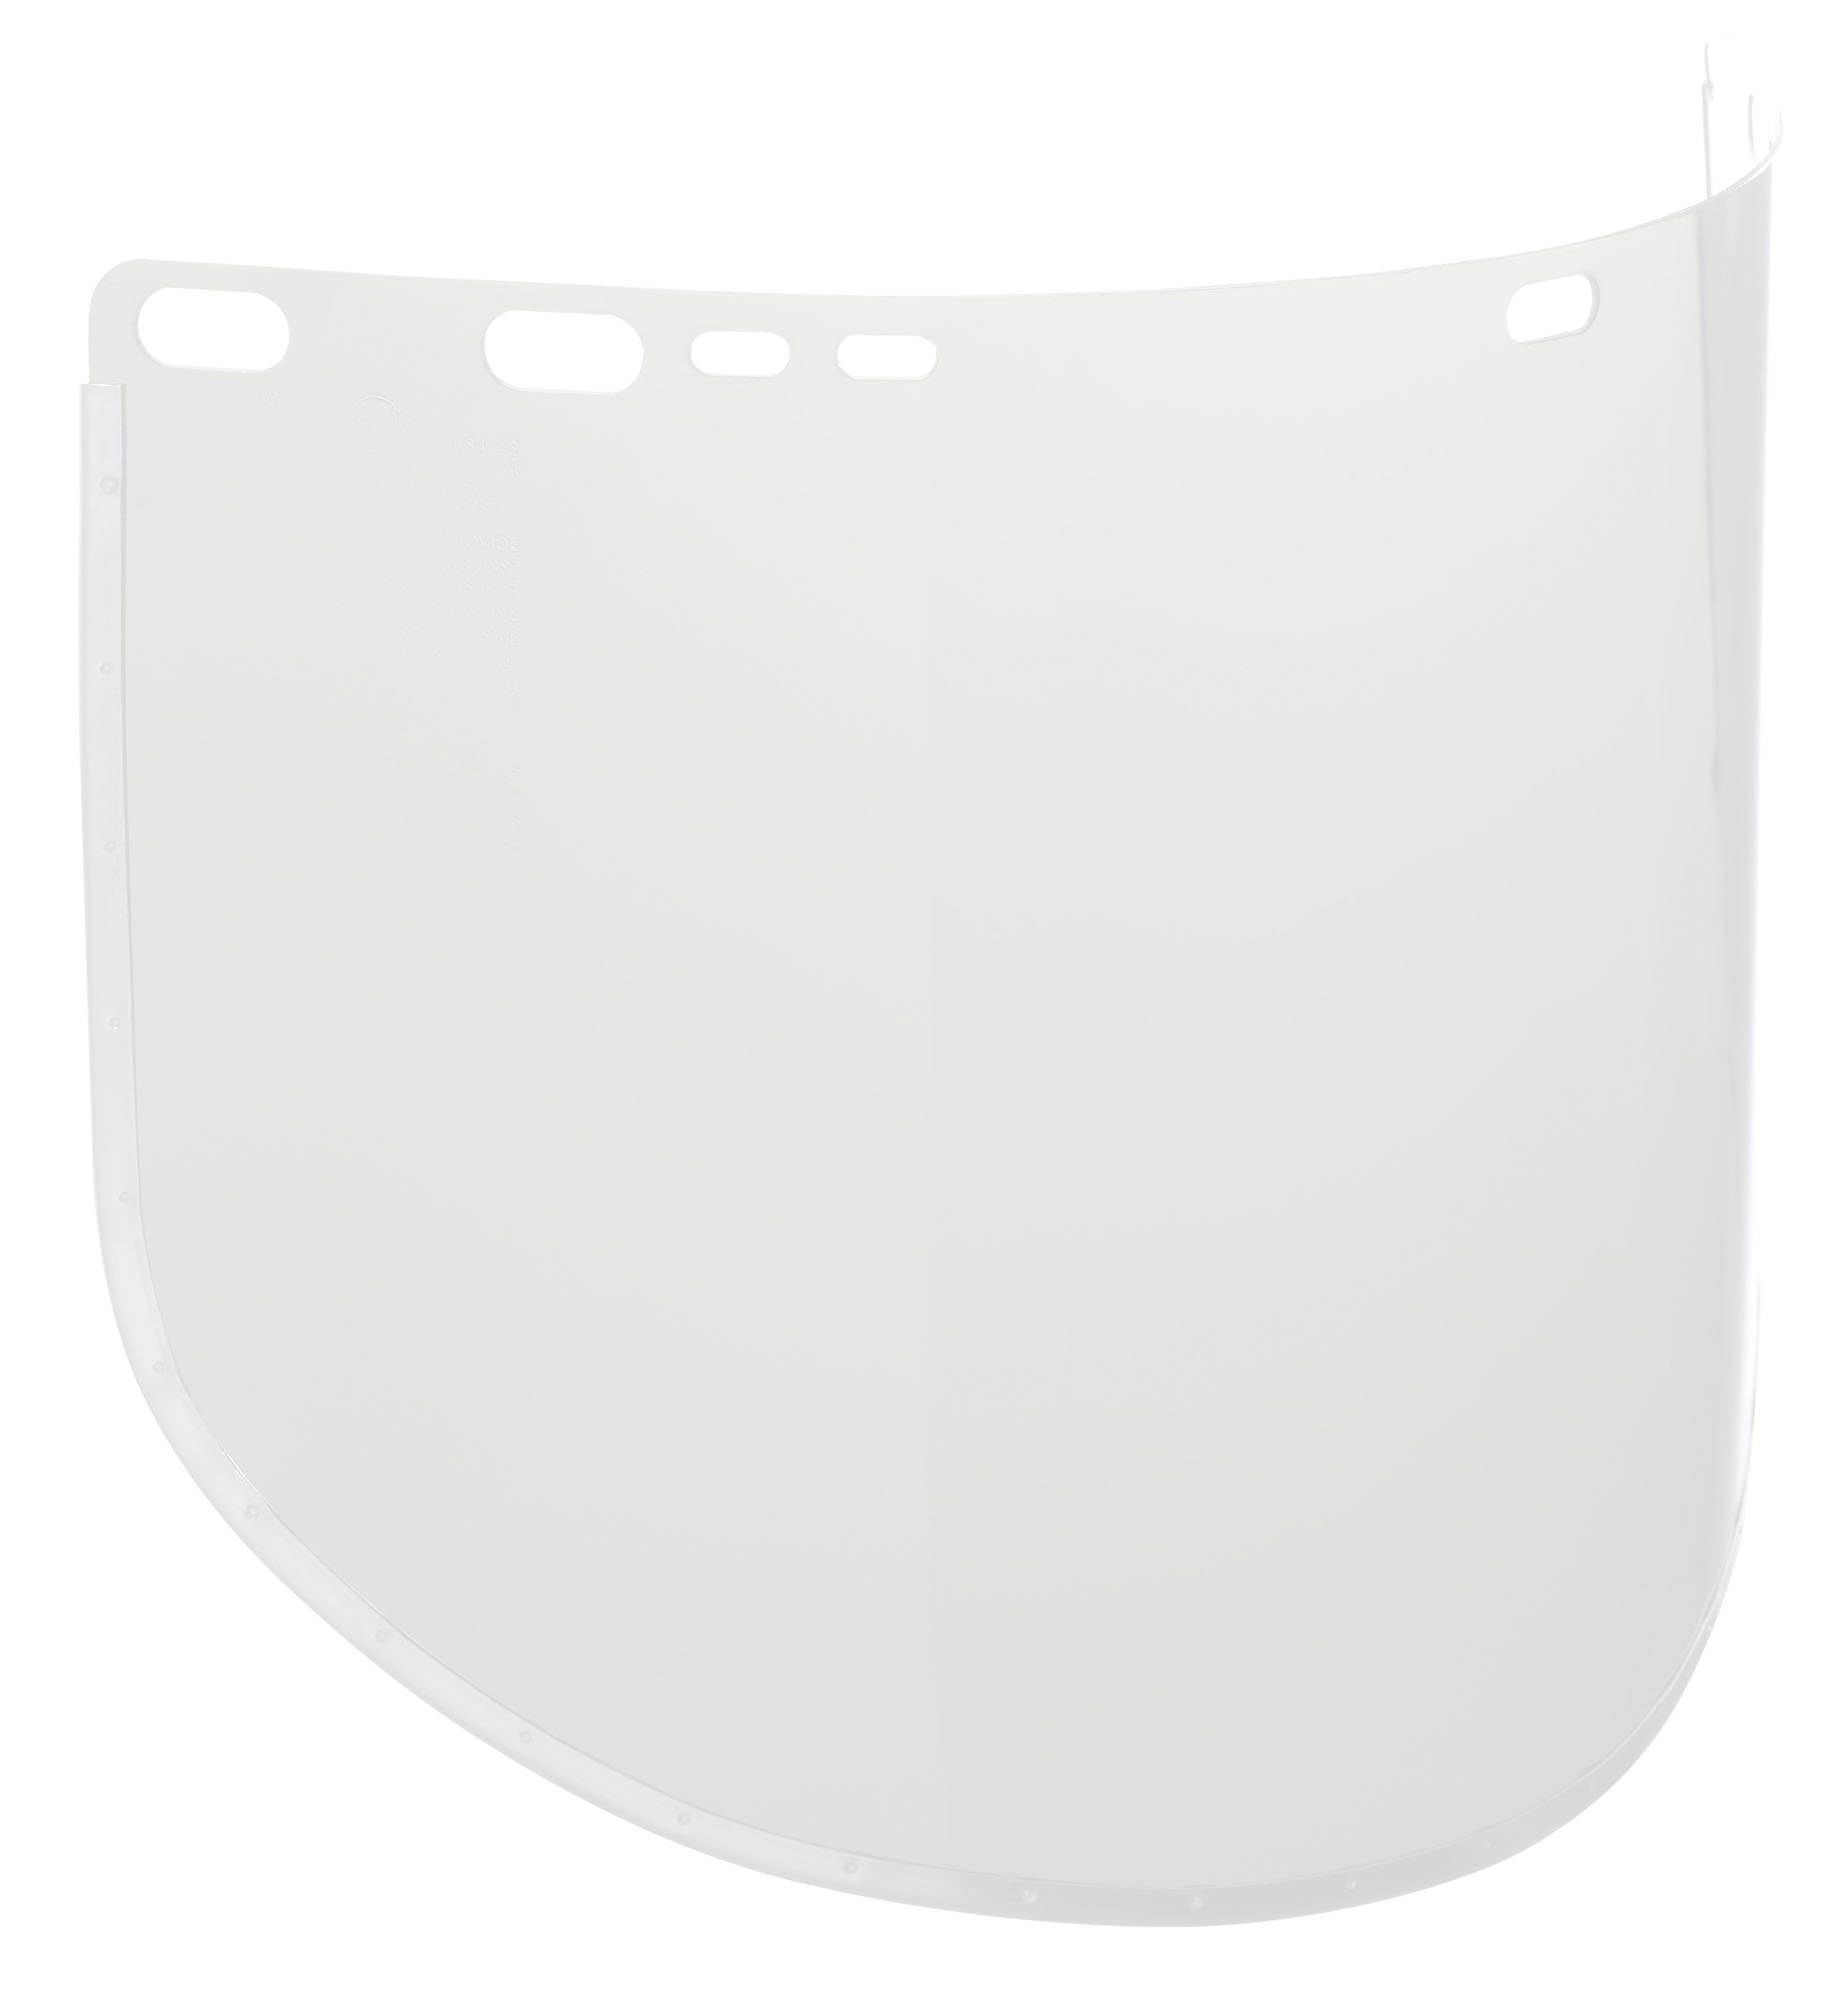 Jackson Safety F30 Acetate Aluminum Bound Face Shield, 15-1/2'' Length x 9'' Width x 0.040'' Thick, Clear (Case of 50)